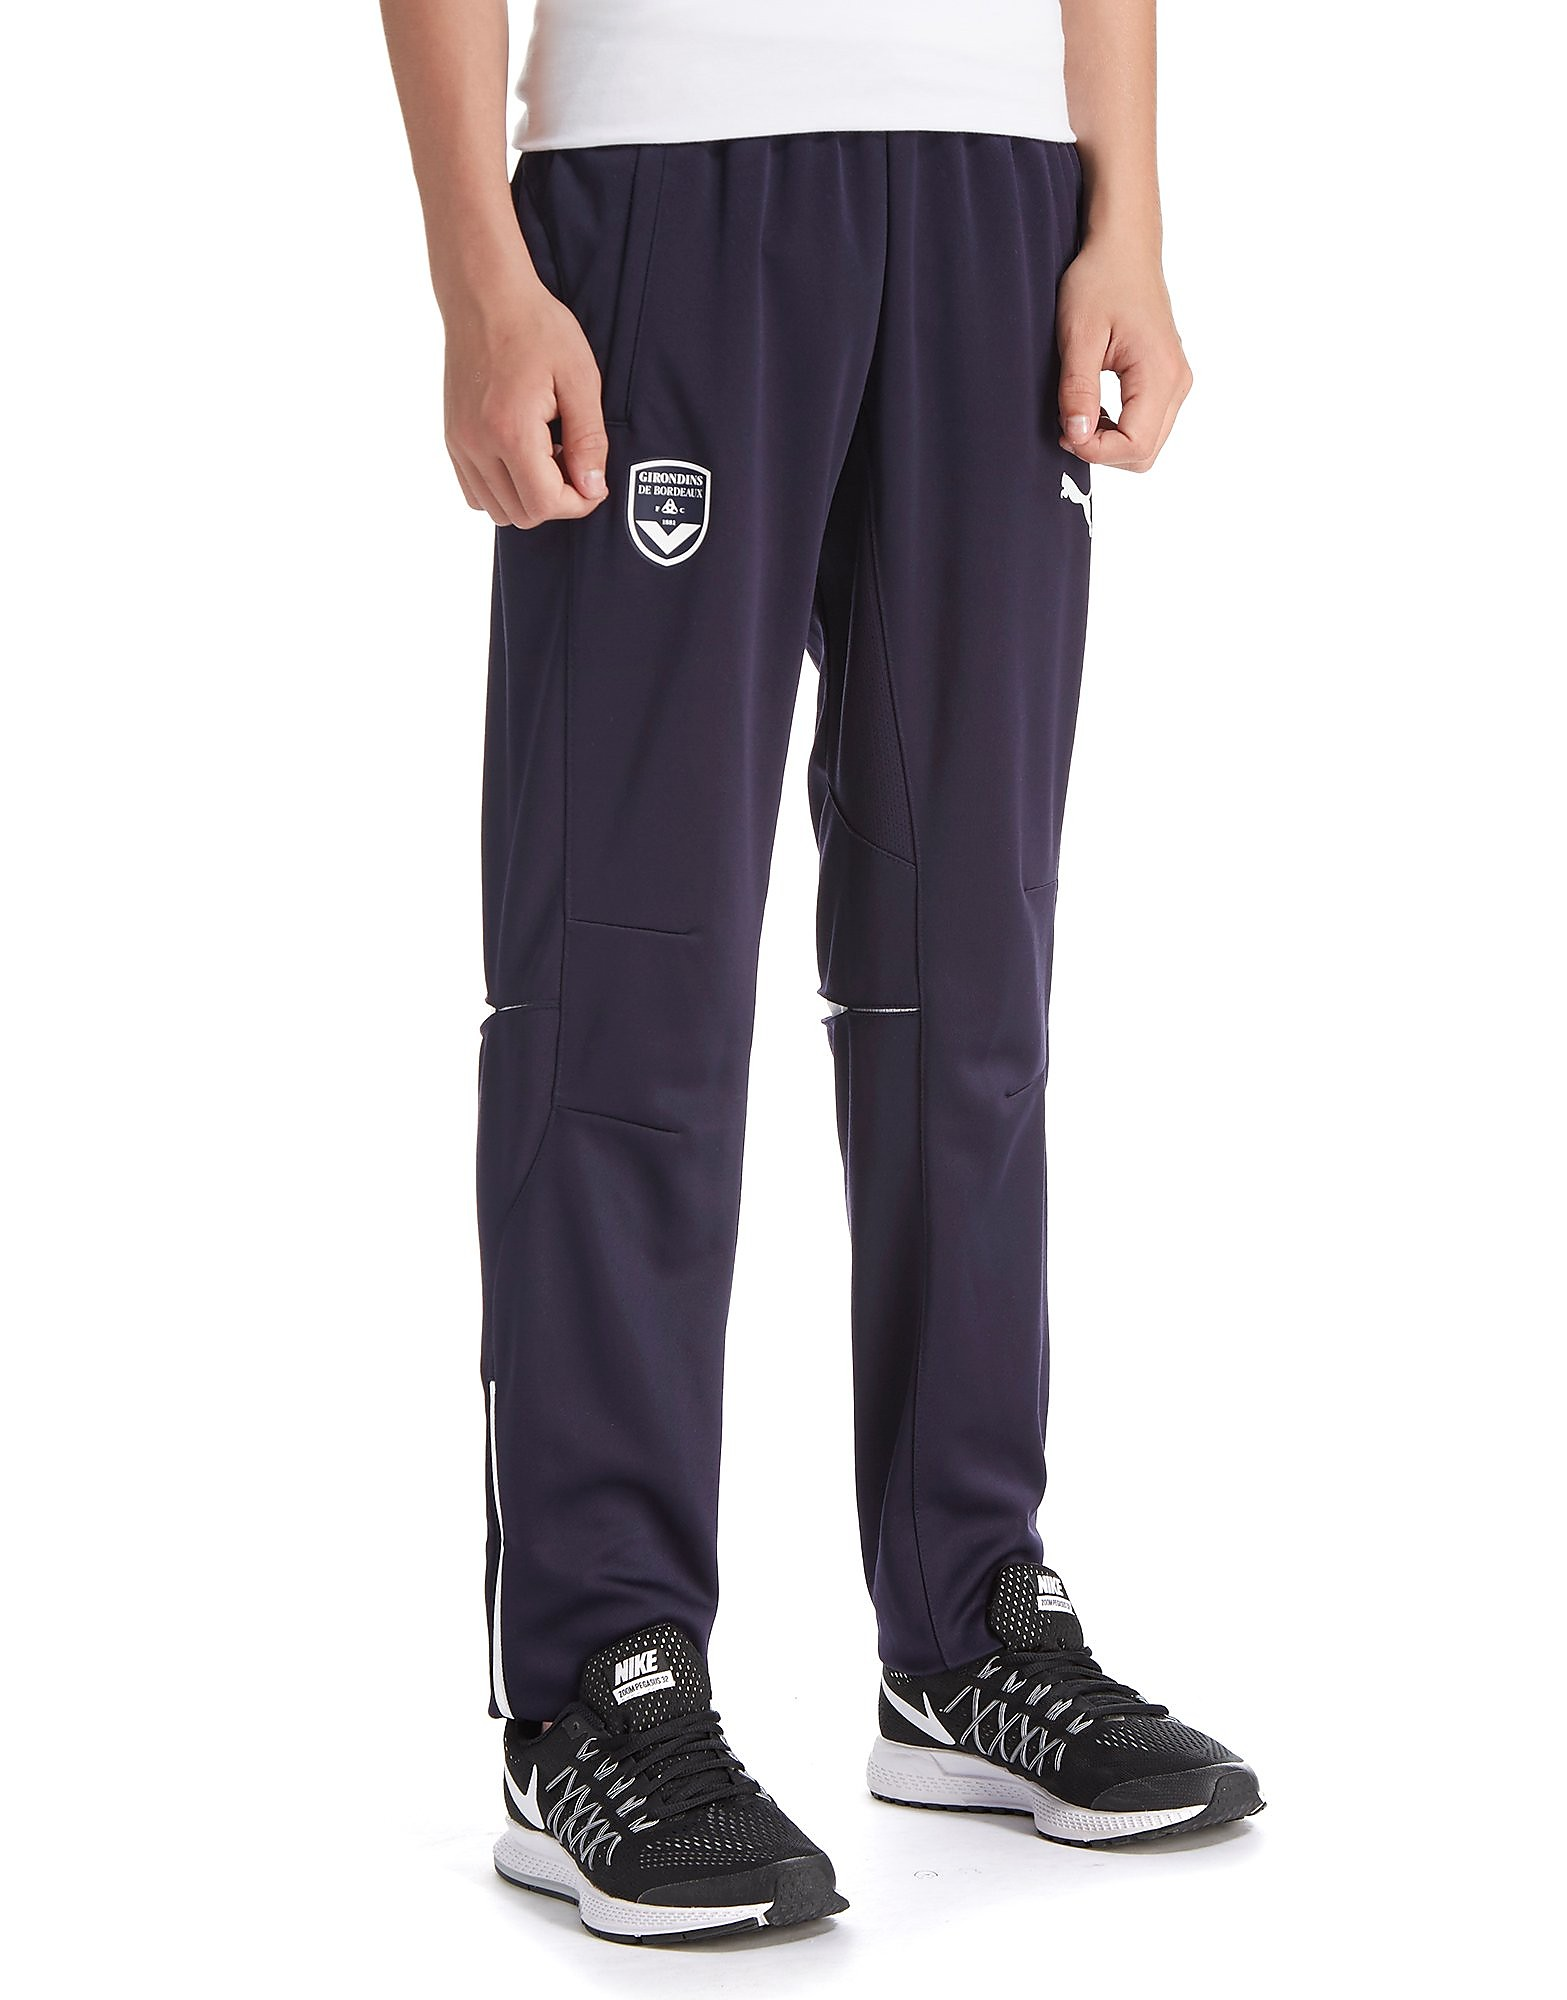 PUMA Bordeaux 2016/17 Training Pants Junior